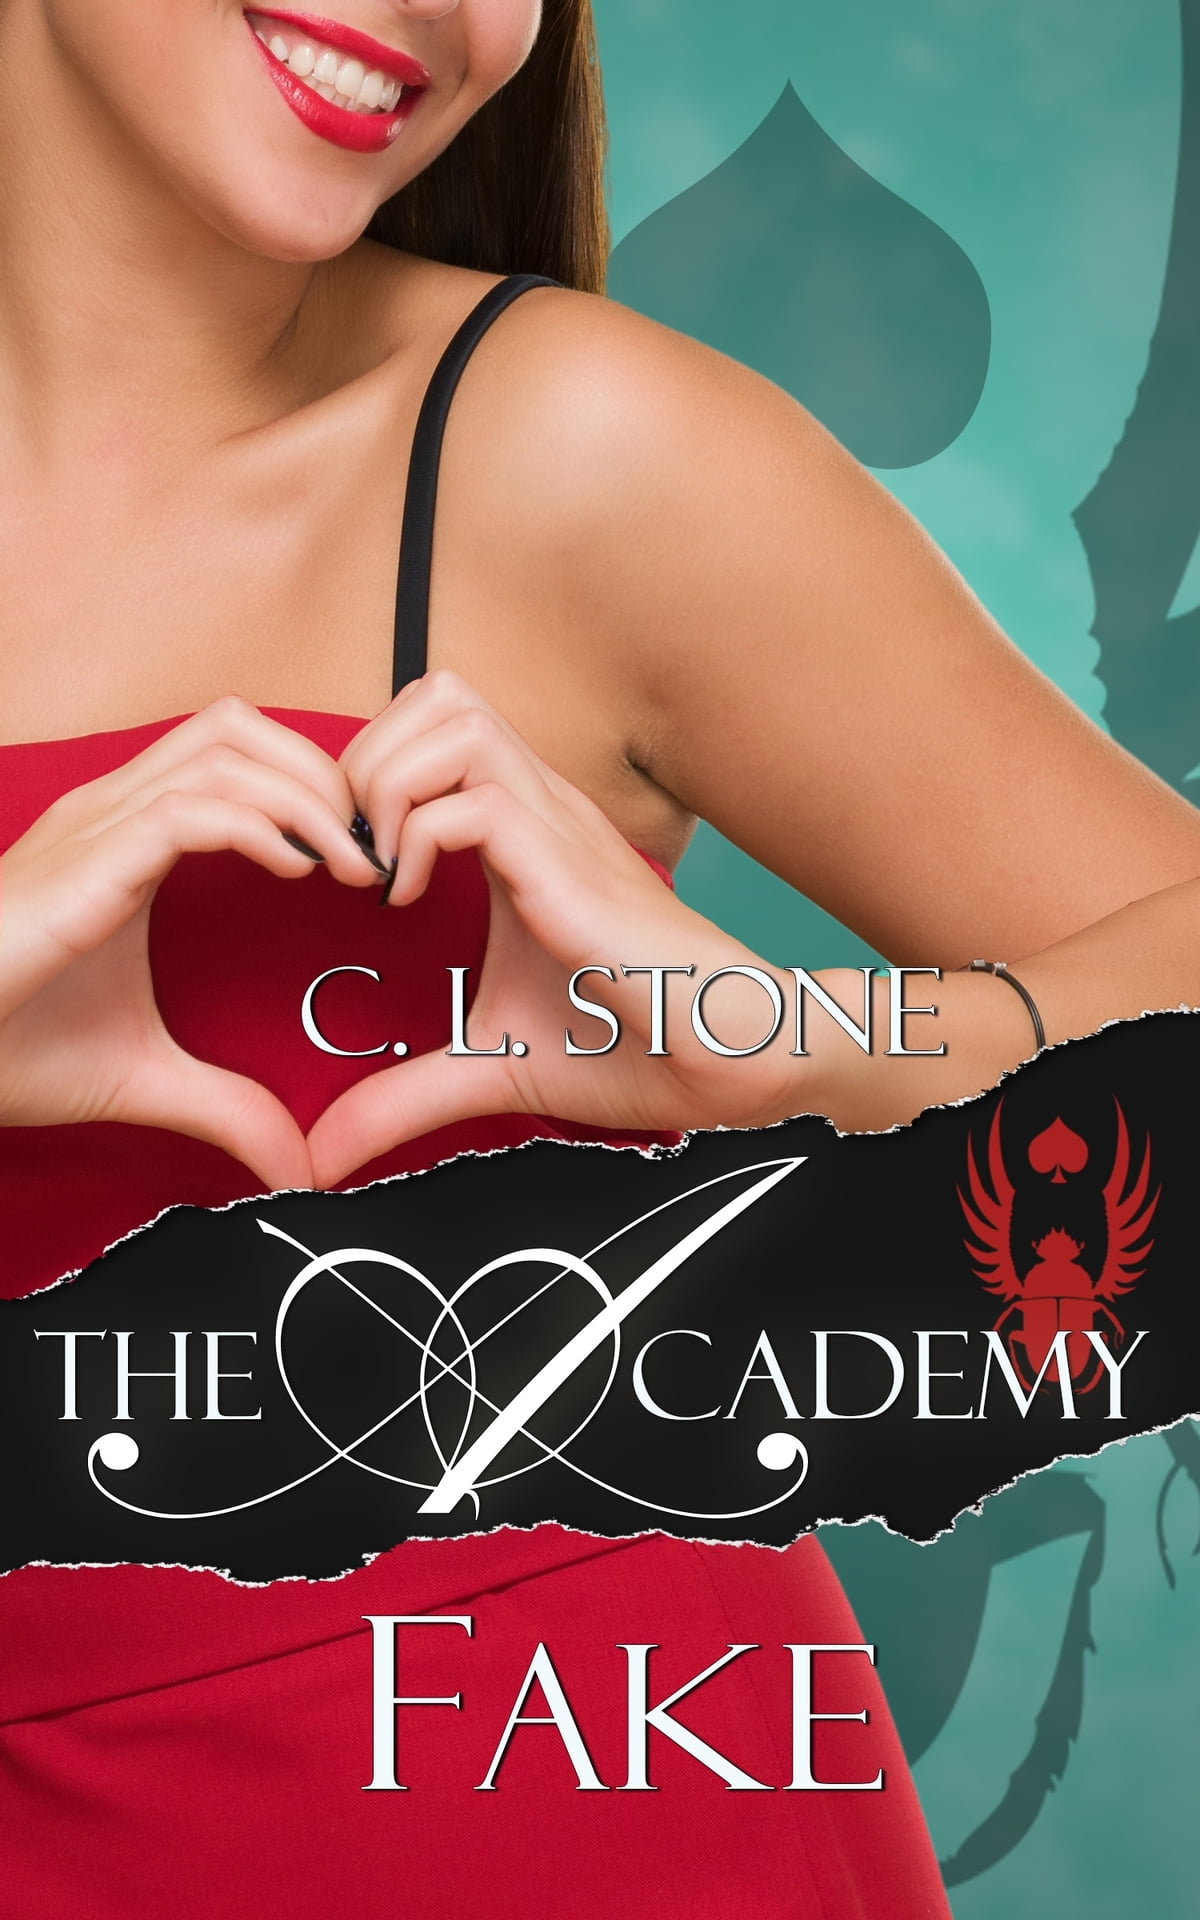 The Academy  Fake  The Scarab Beetle Series #3 Ebook By C L Stone